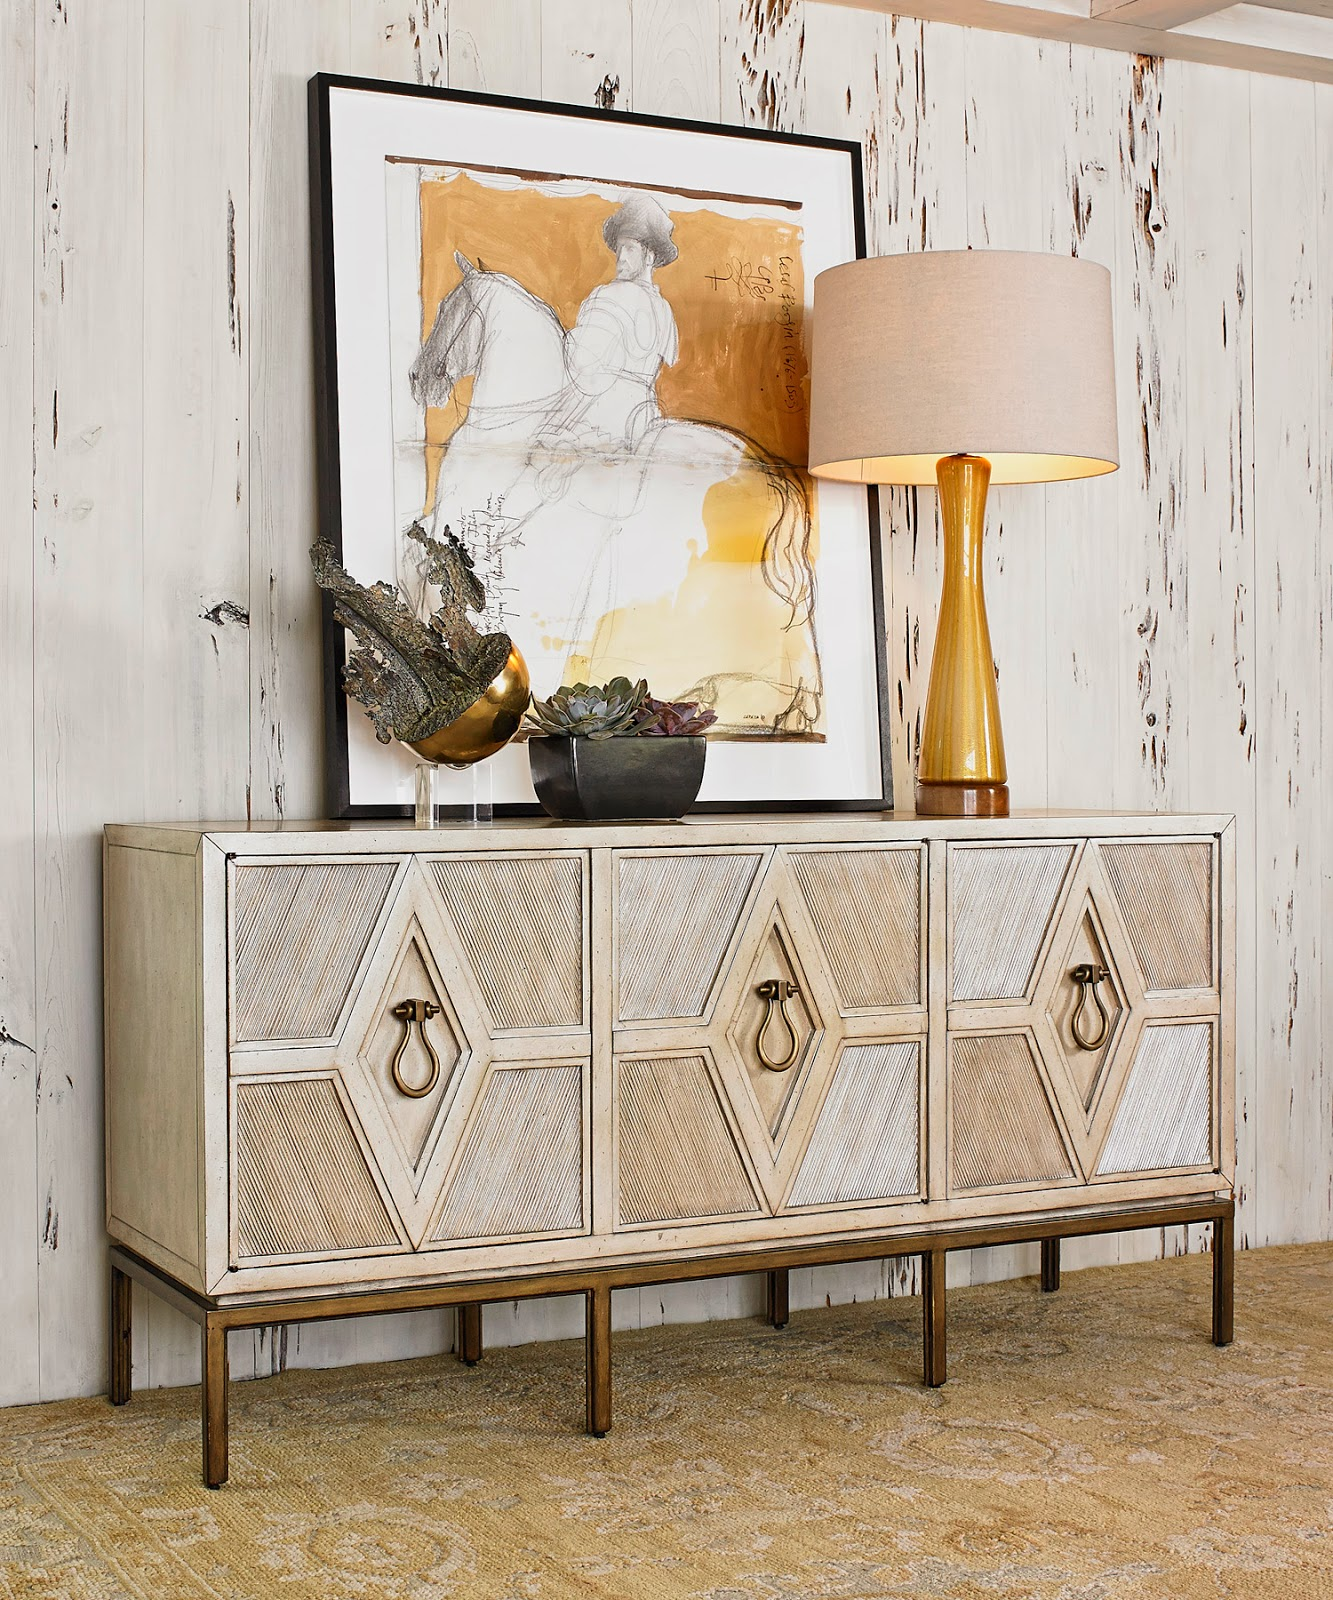 A Grommet Is Provided For Easy Access To Wiring. Upper Drawer Faces Conceal  A Cabinet With Three Adjustable Shelves. All Top Cabinets Are Lighted And  All ...